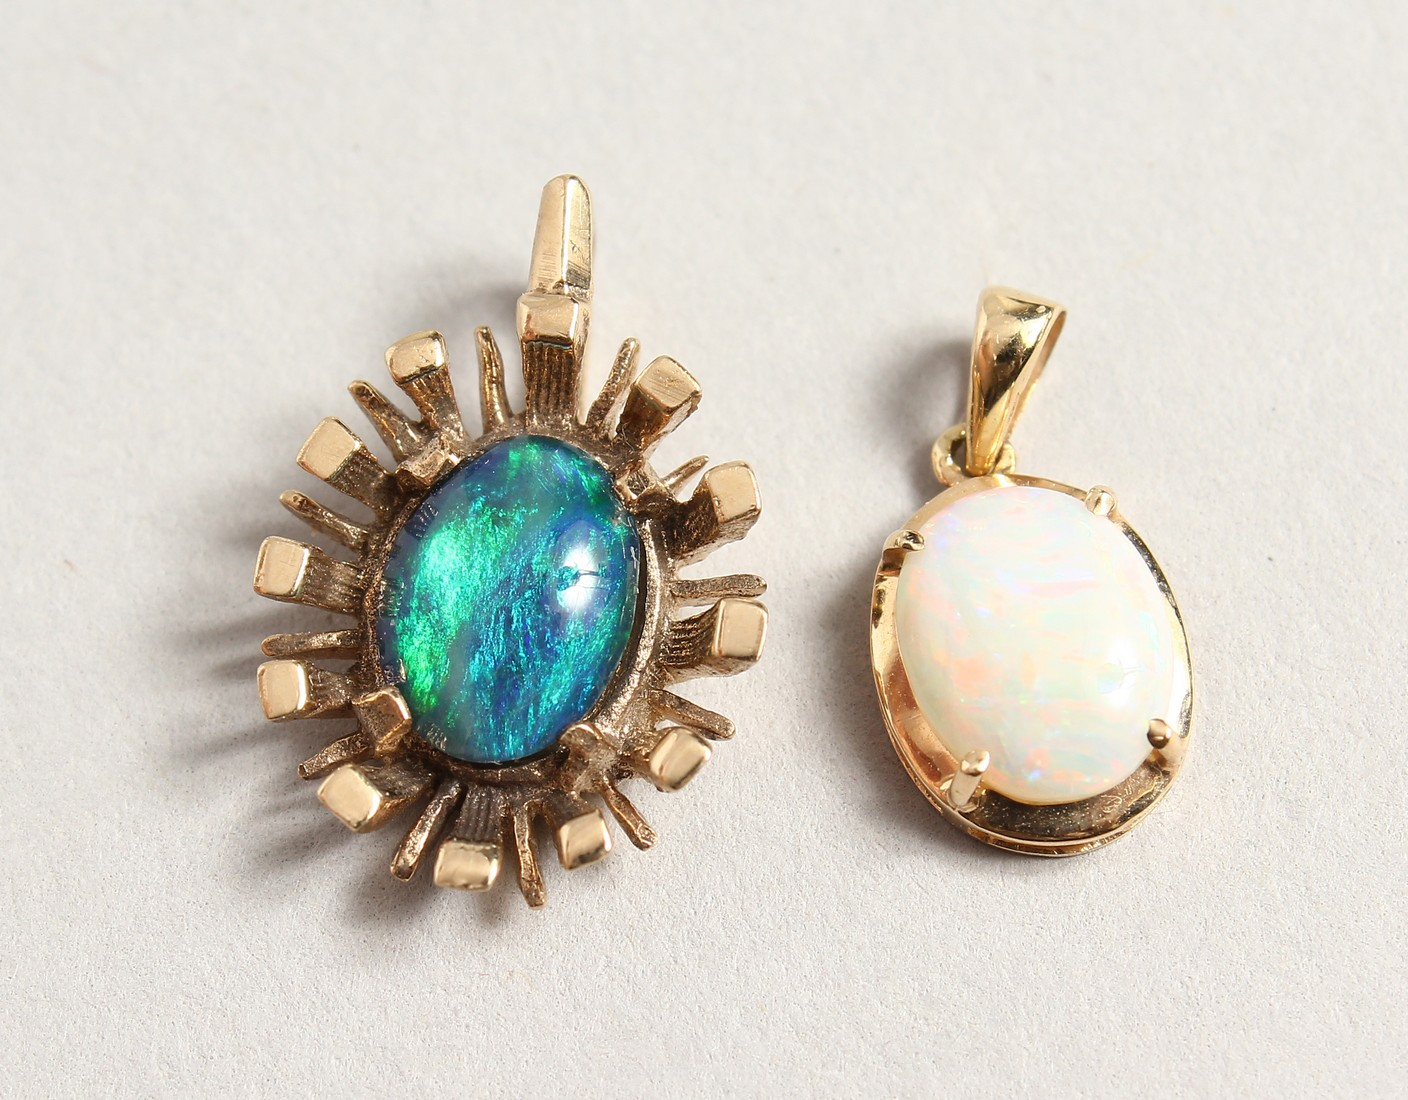 TWO SMALL GOLD OPAL PENDANTS